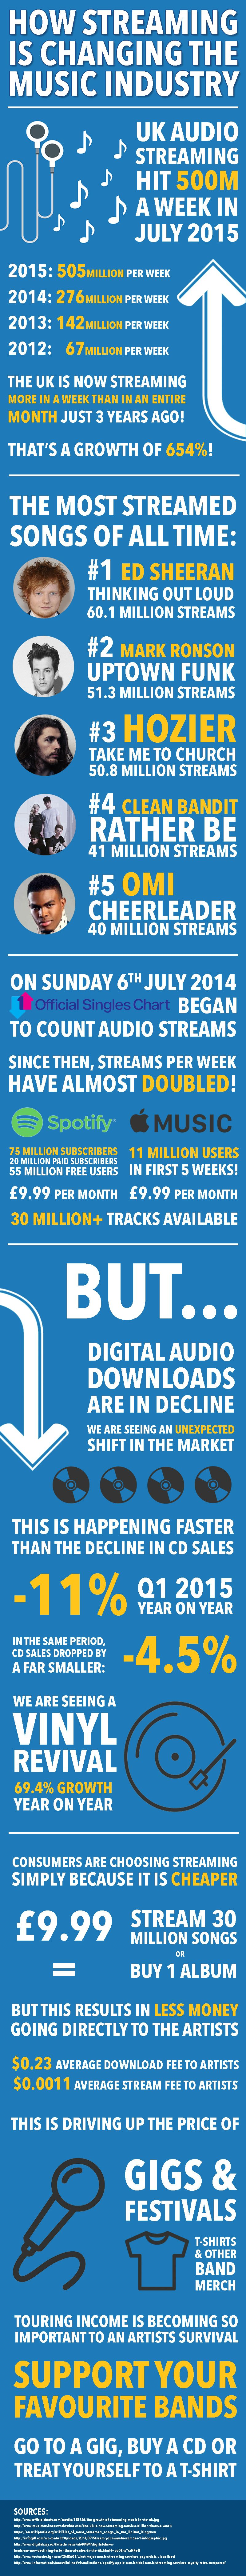 How Streaming Is Changing The Music Industry #infographic